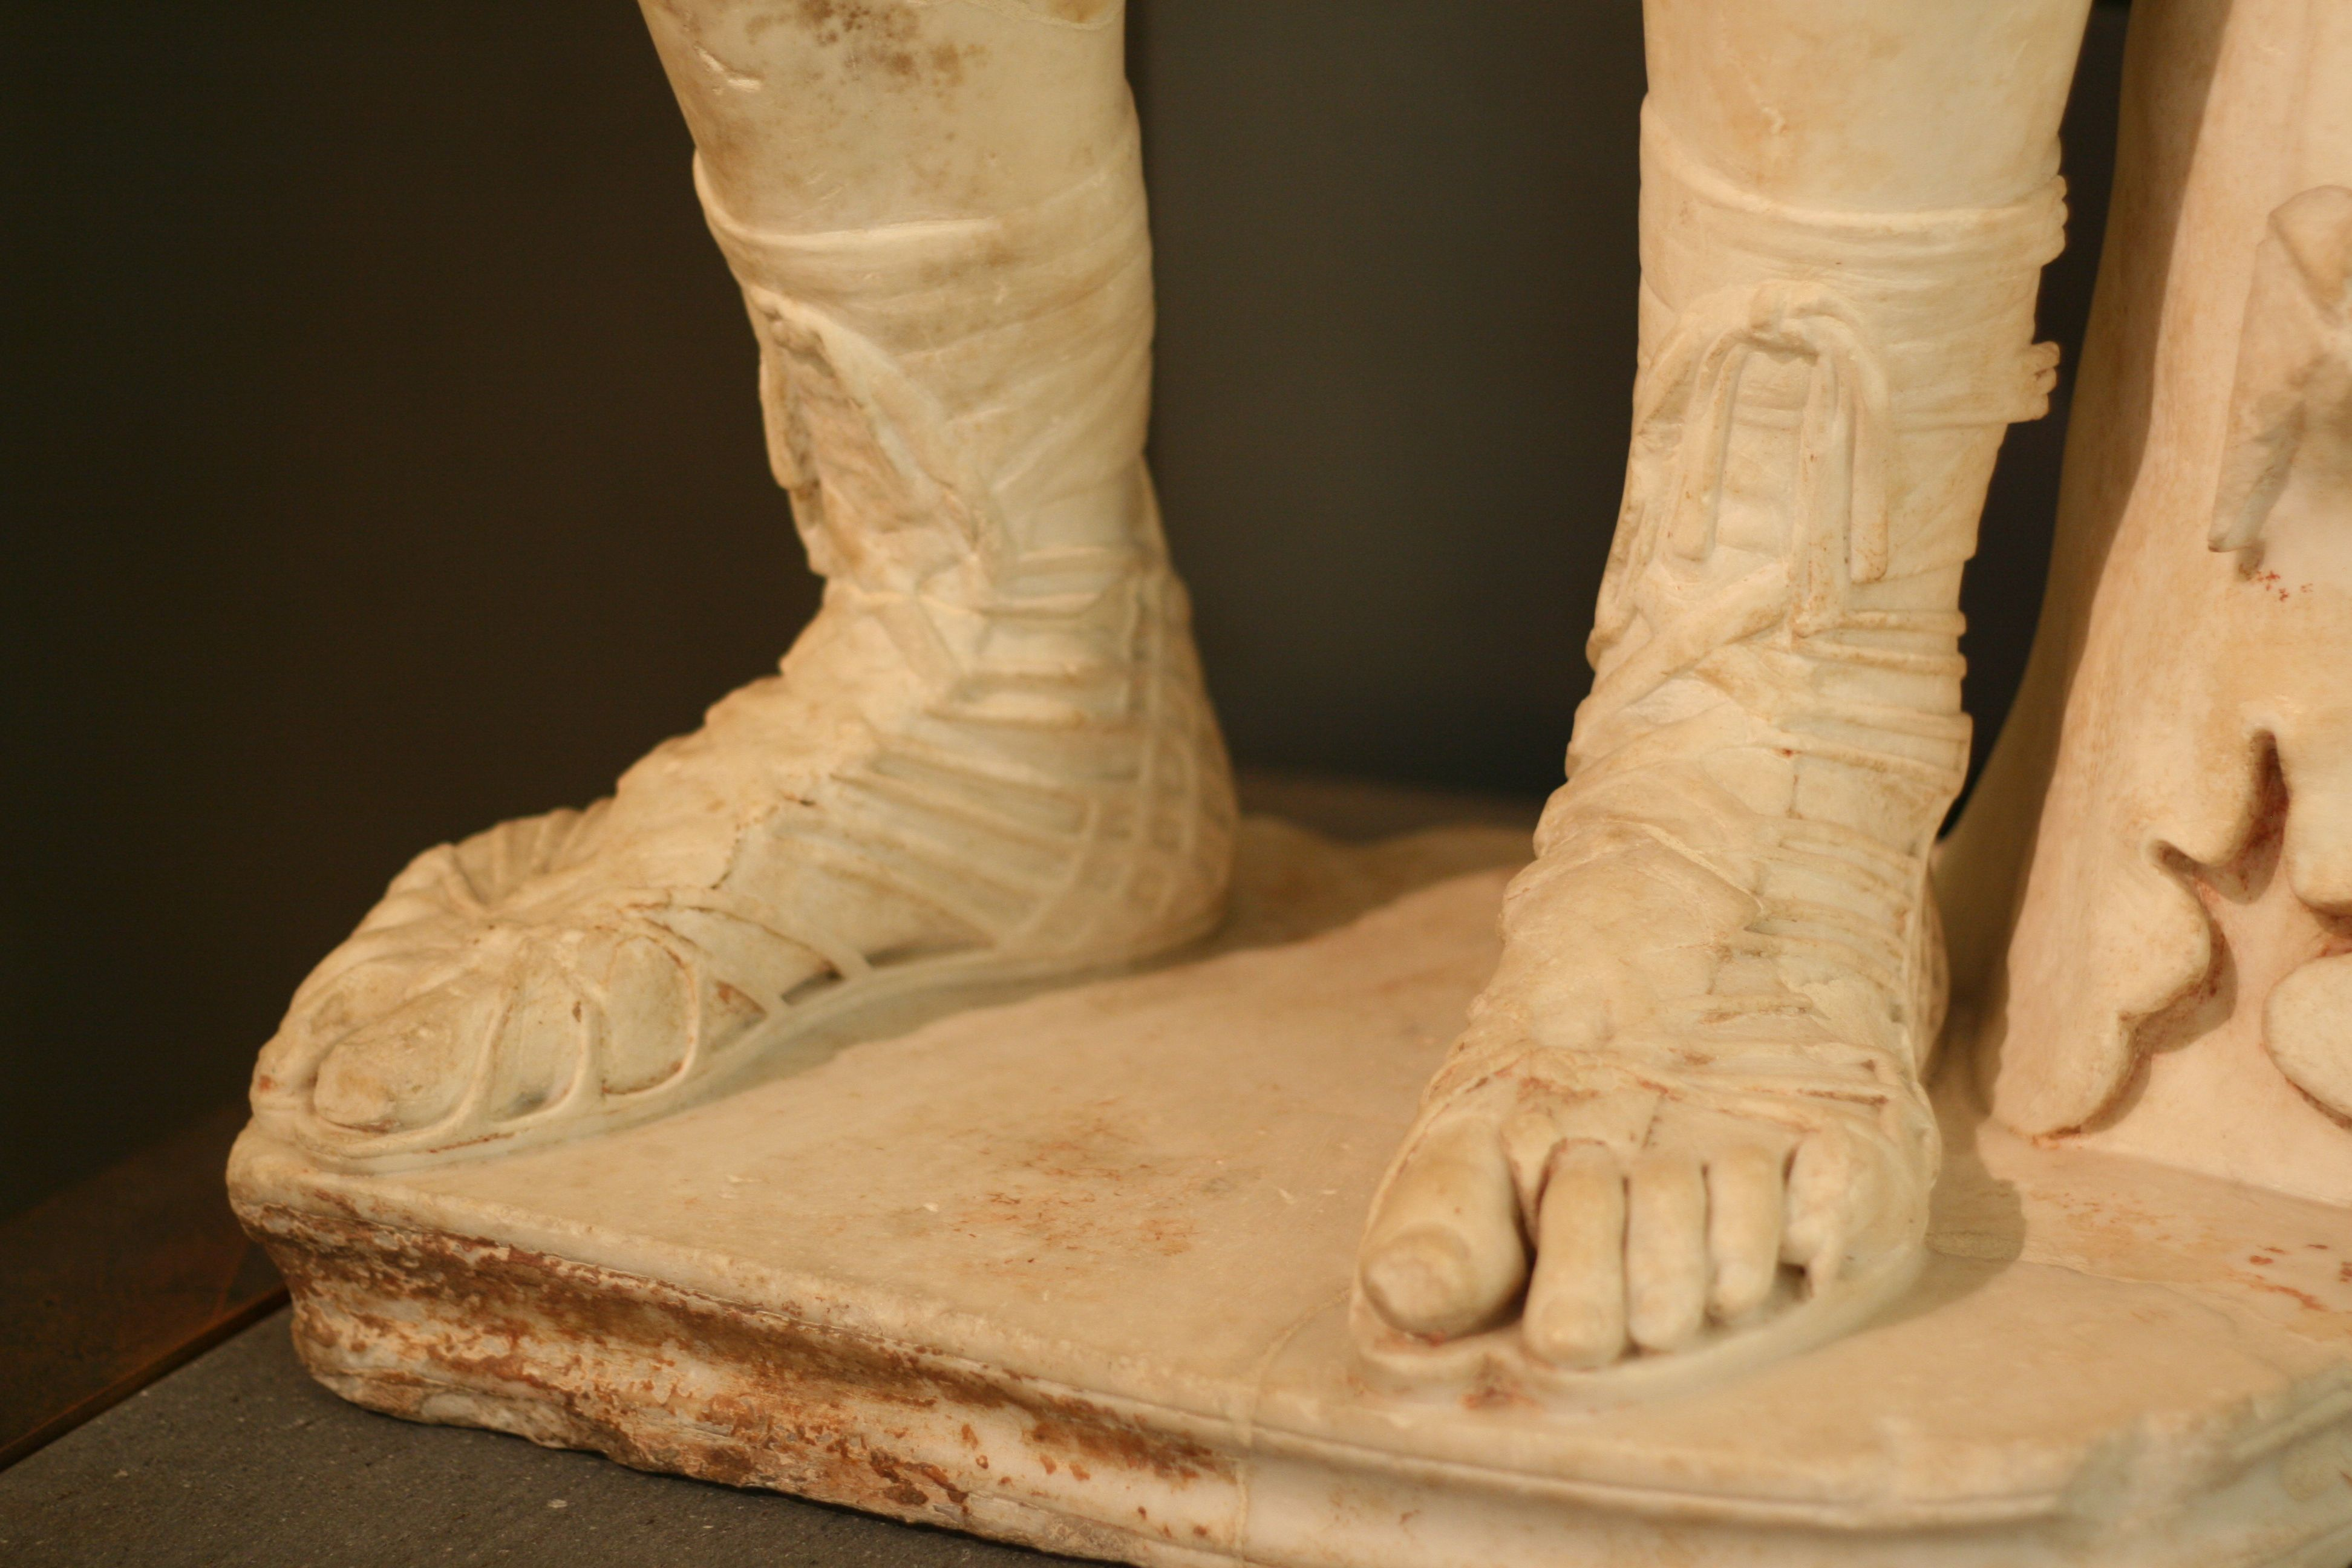 c9ff0f53b9f7d Roman gladiator sandal and foot detail from sculpture in Capitoline ...